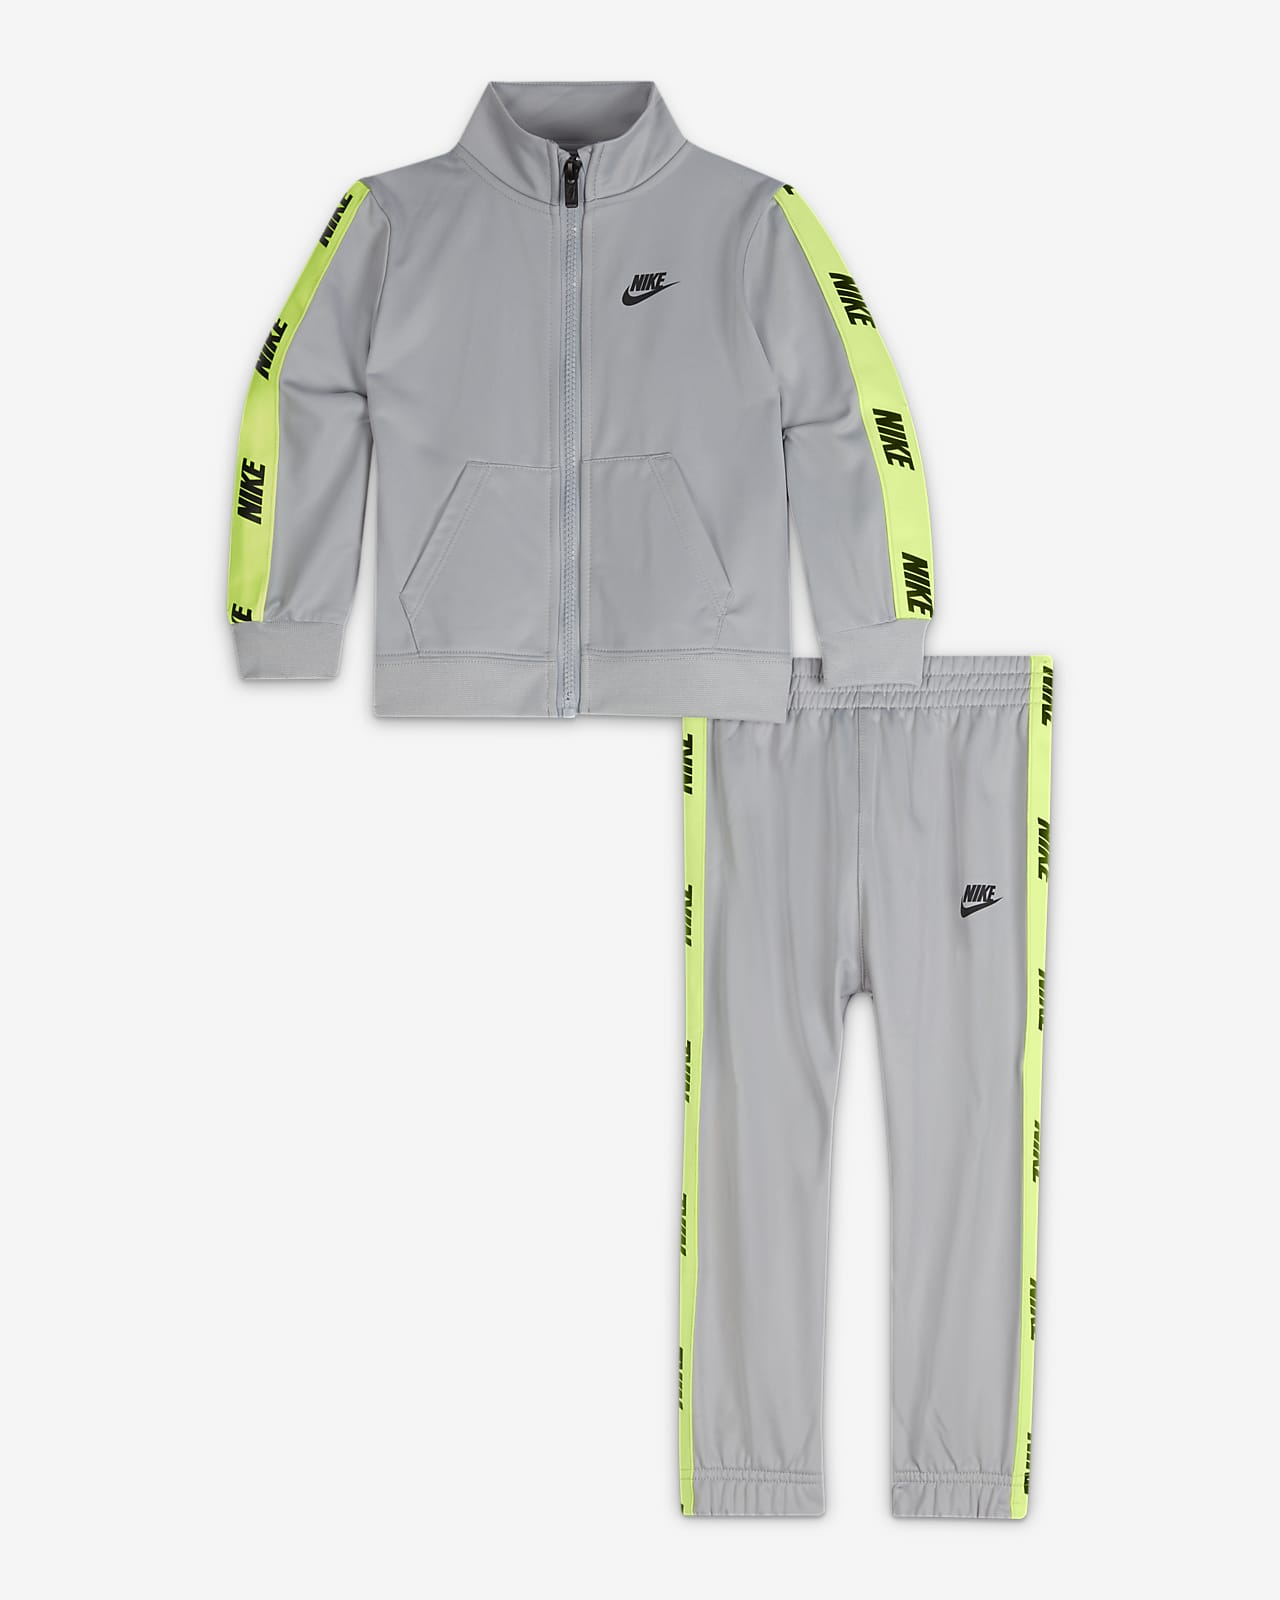 Nike Sportswear Baby (12-24M) Jacket and Pants Set